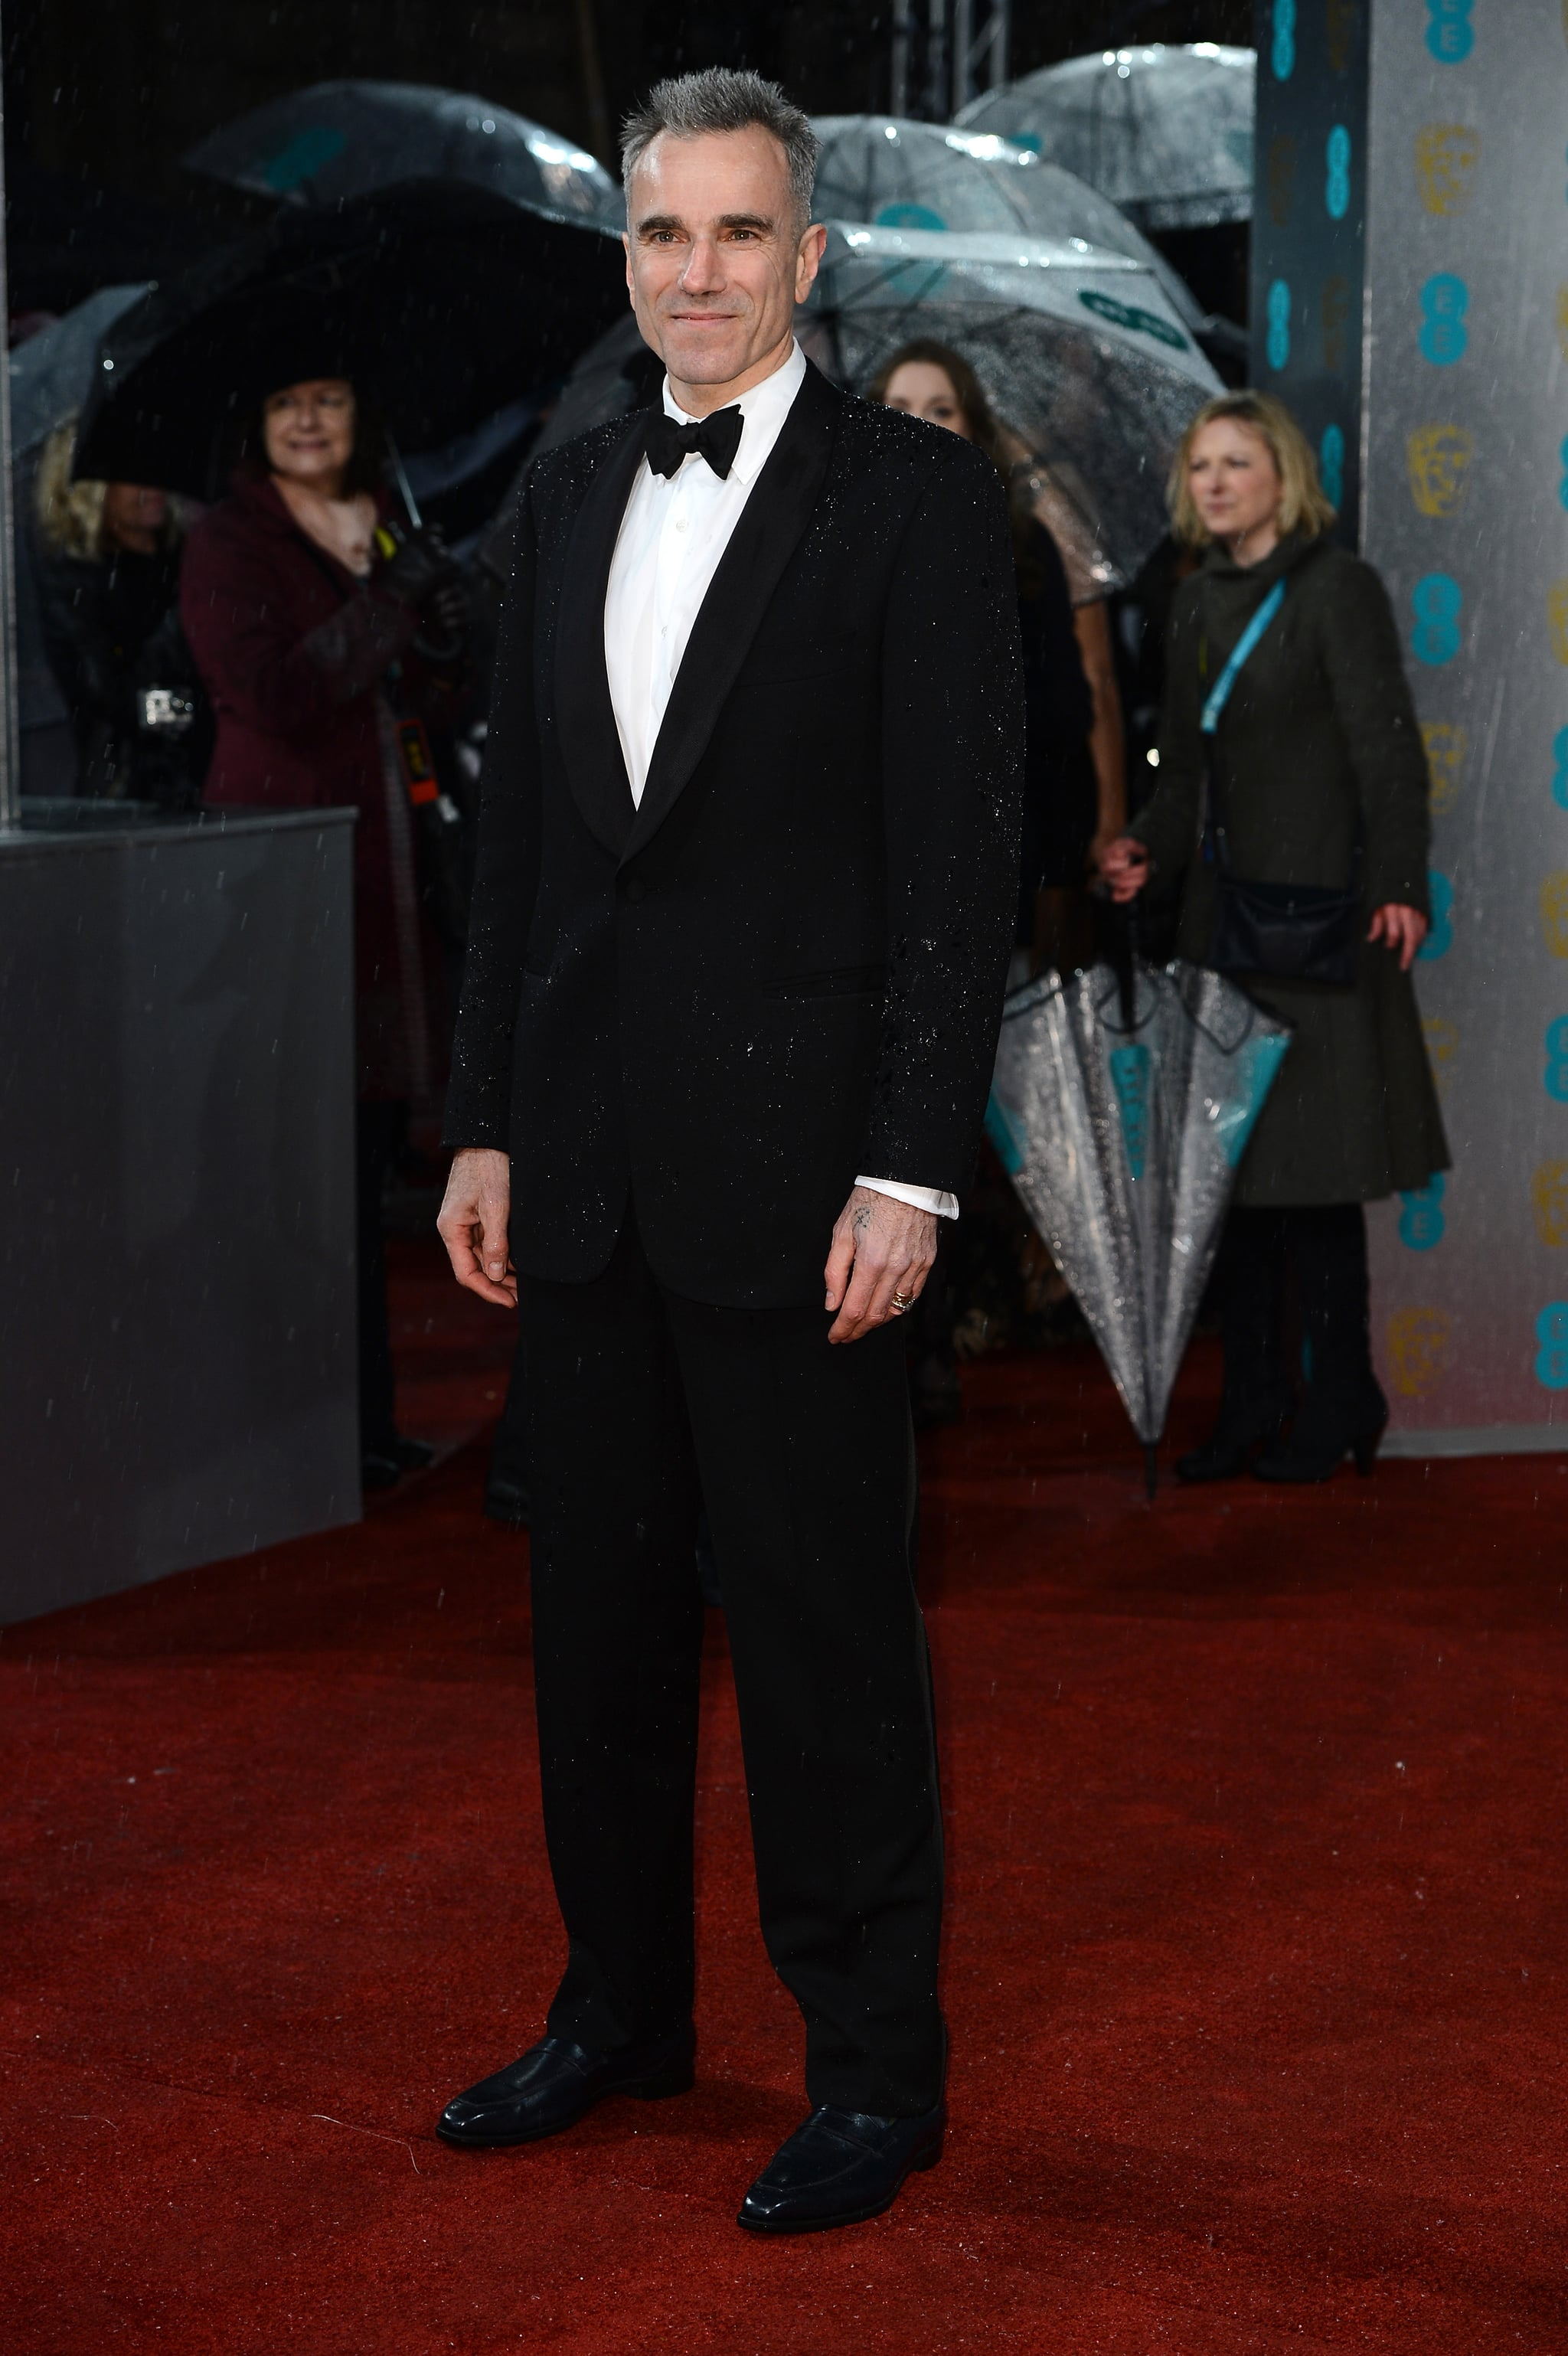 Daniel Day-Lewis stepped out for the BAFTAs.